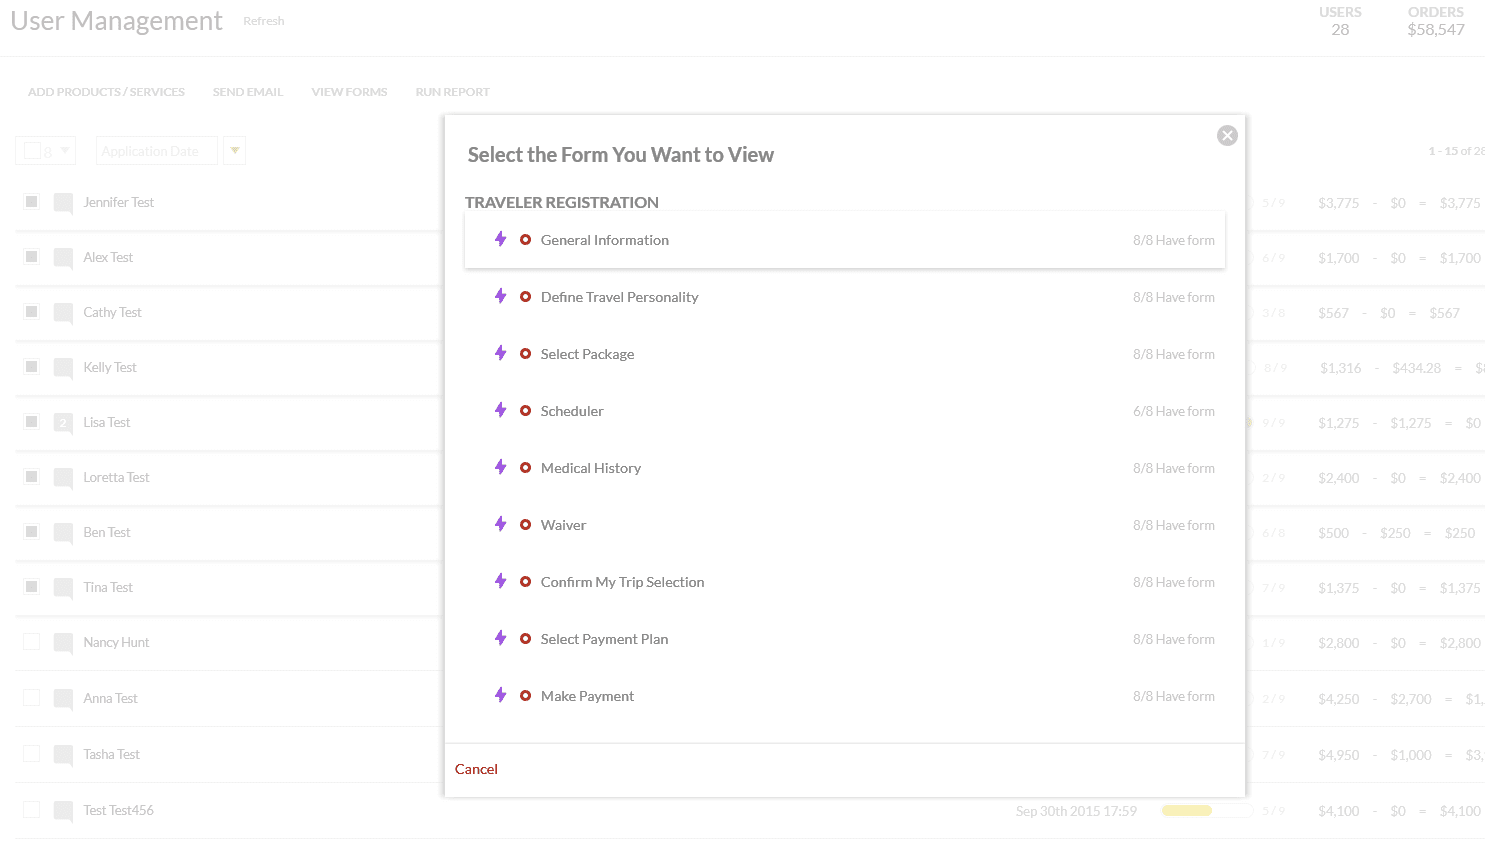 select form for multiple users